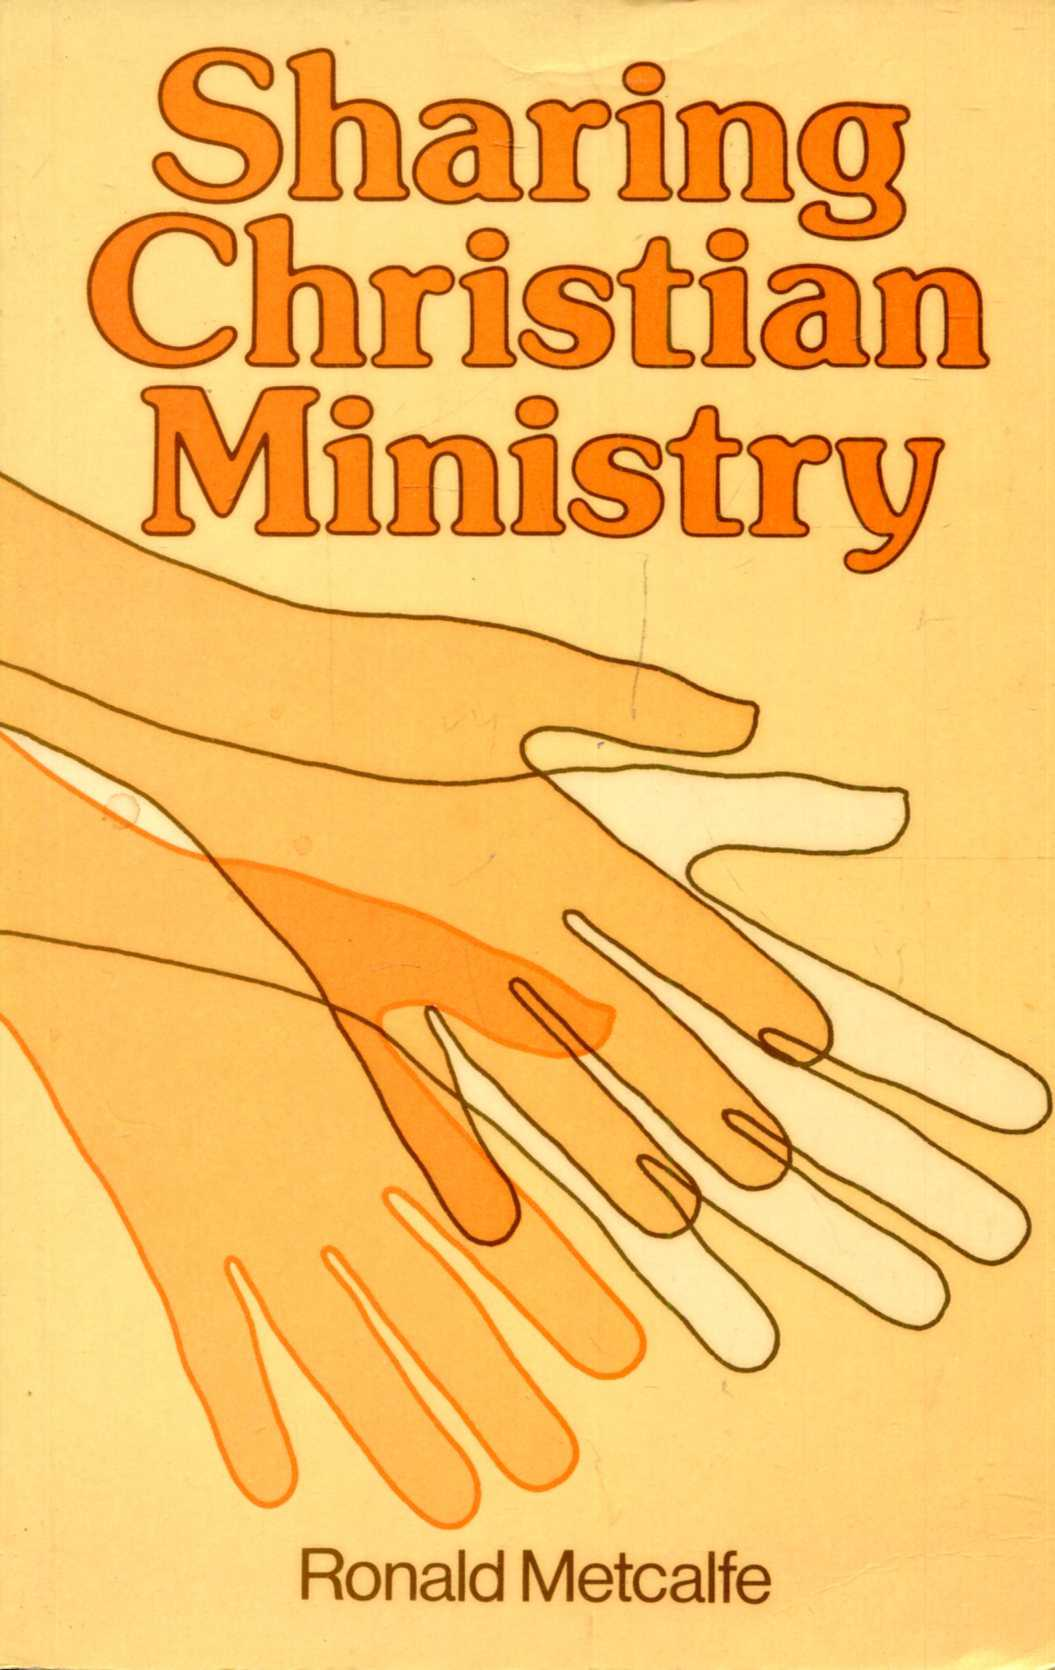 Image for Sharing Christian Ministry